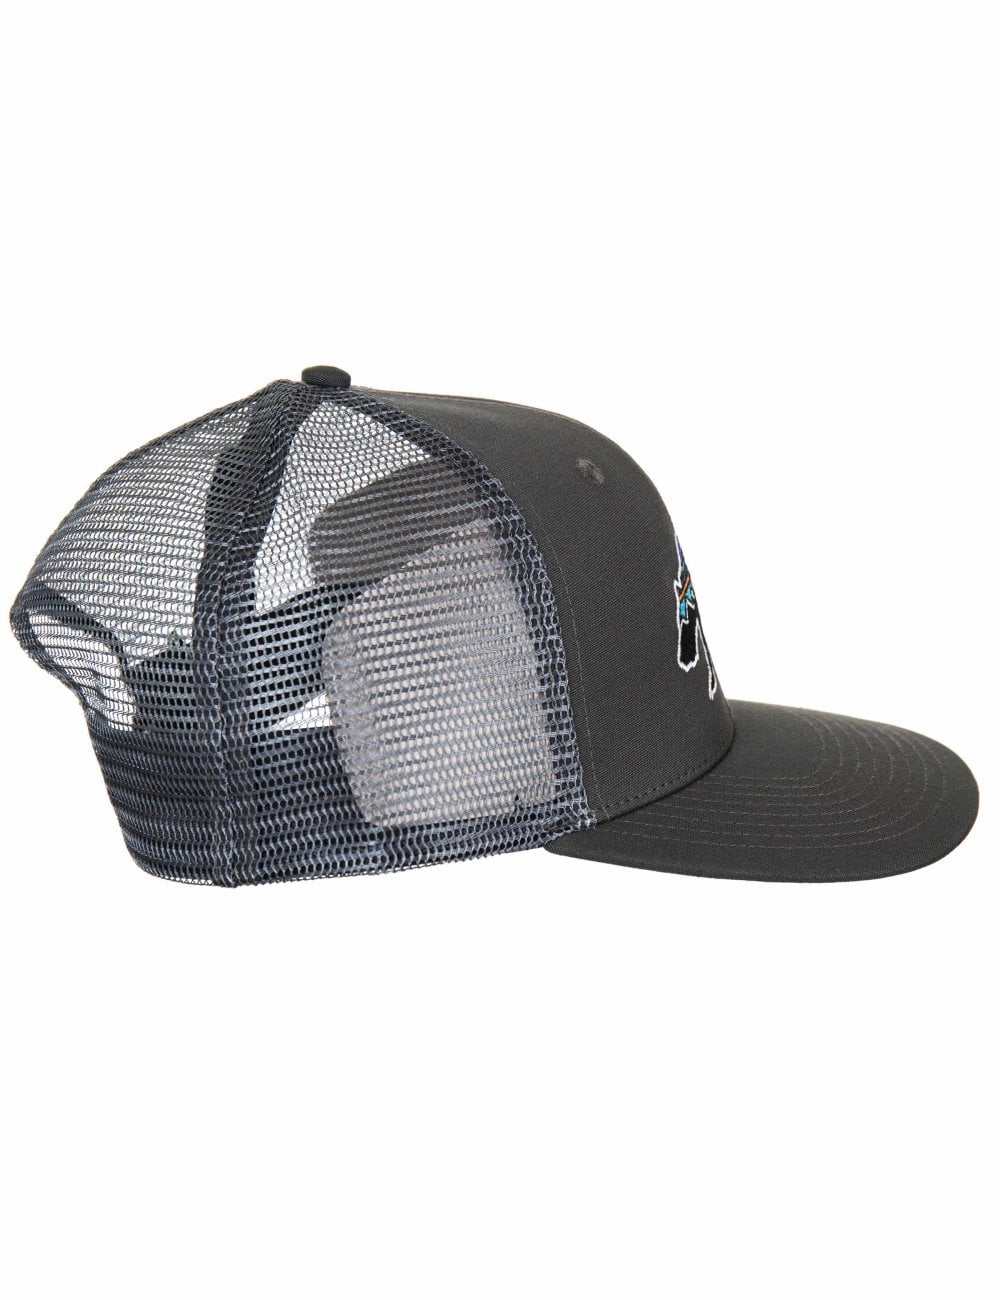 941de70f7e1c2 Patagonia Fitz Roy Bear Trucker Hat - Forge Grey - Accessories from ...